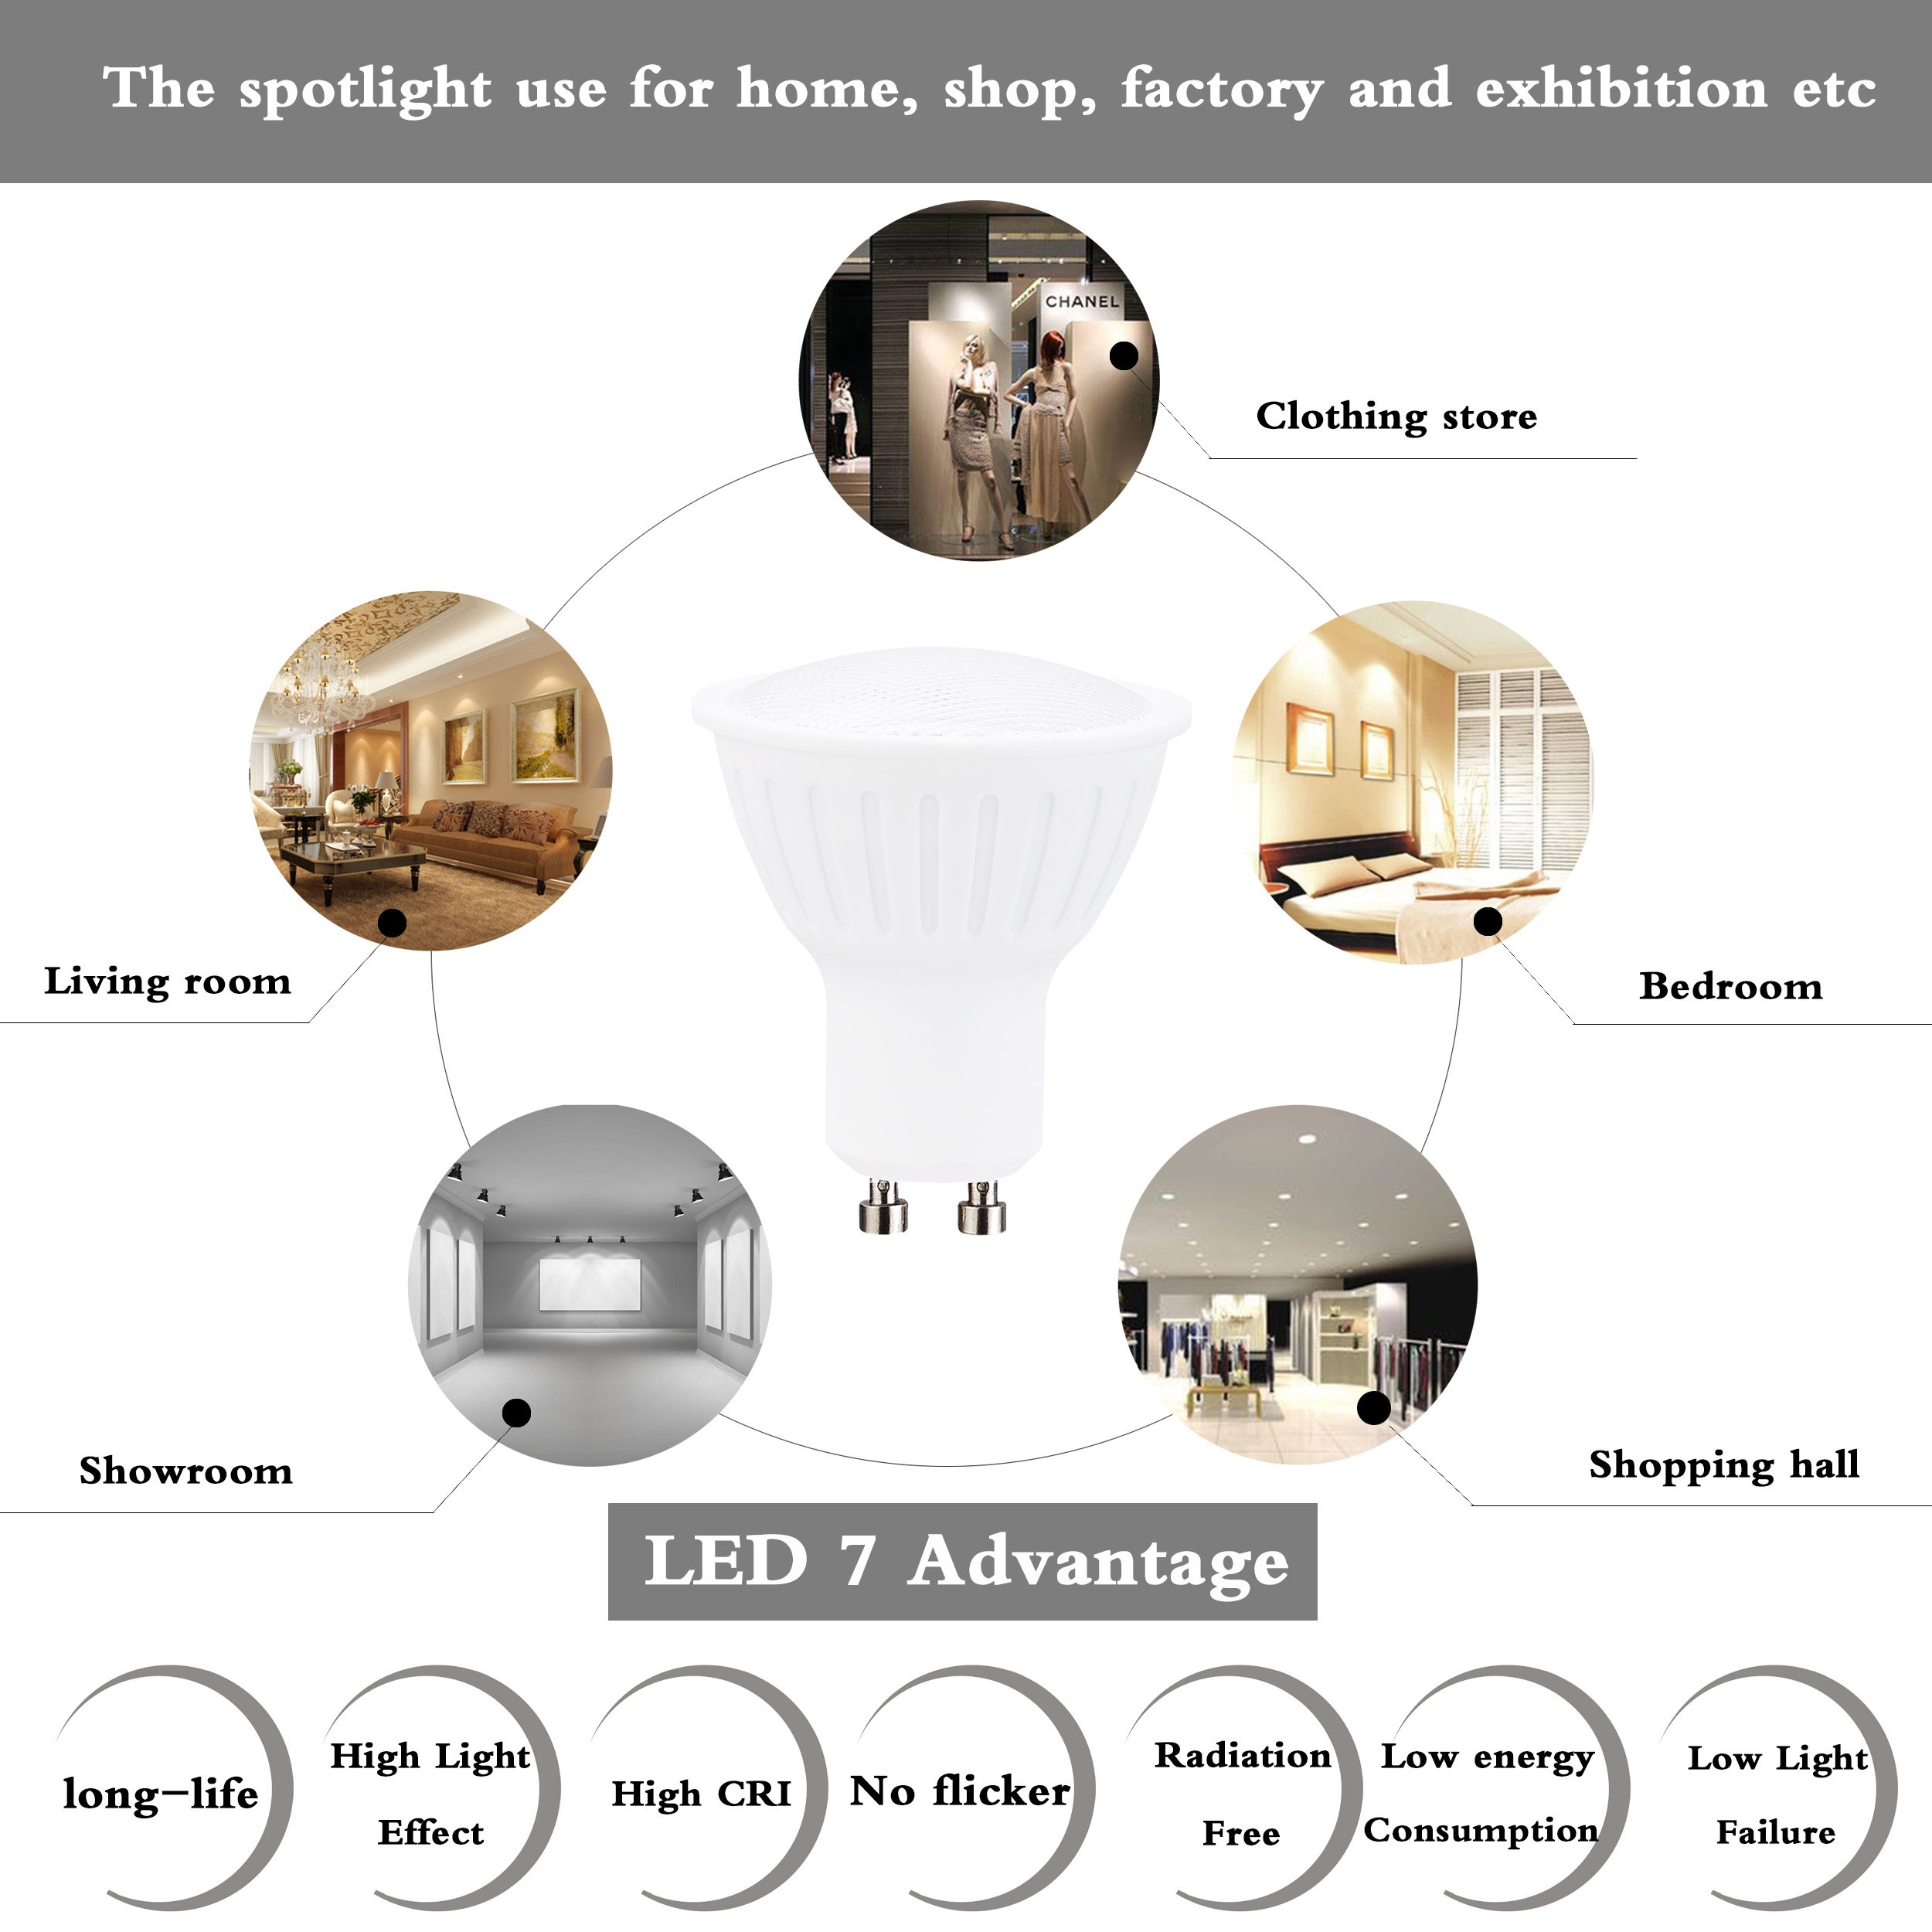 (Pack of 1)3W Dimmable GU10 Led Light bulbs 30W Equivalent, 100% Aluminum Reflector 5000K Daylight White, 120 Degree Beam Angle, CRI>90,Track Lighting, Recessed Light